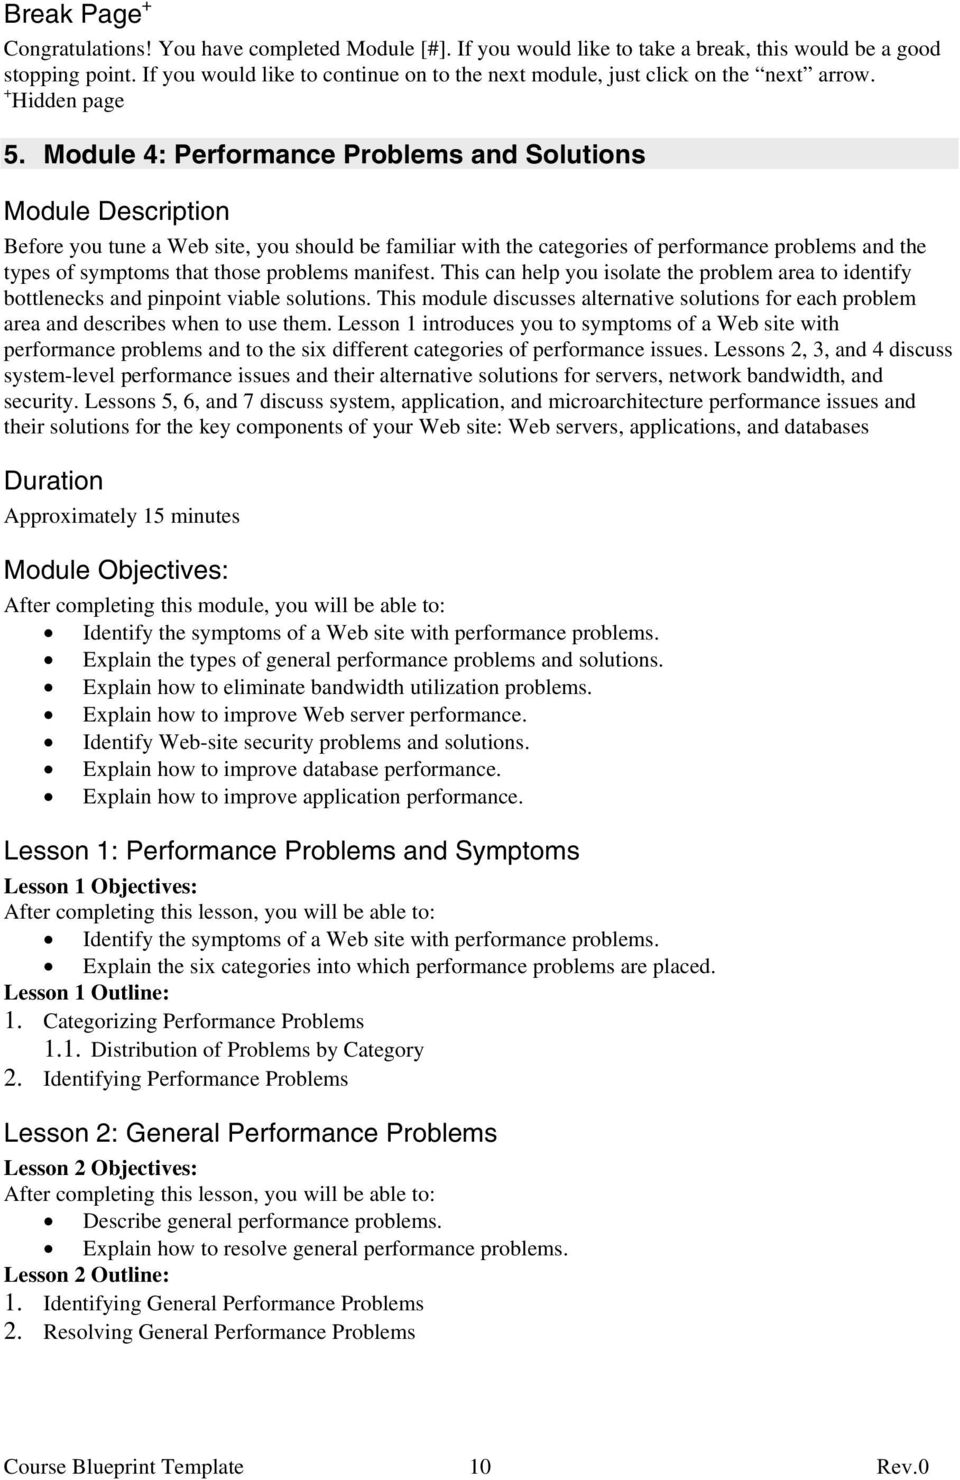 Module 4: Performance Problems and Solutions Module Description Before you tune a Web site, you should be familiar with the categories of performance problems and the types of symptoms that those